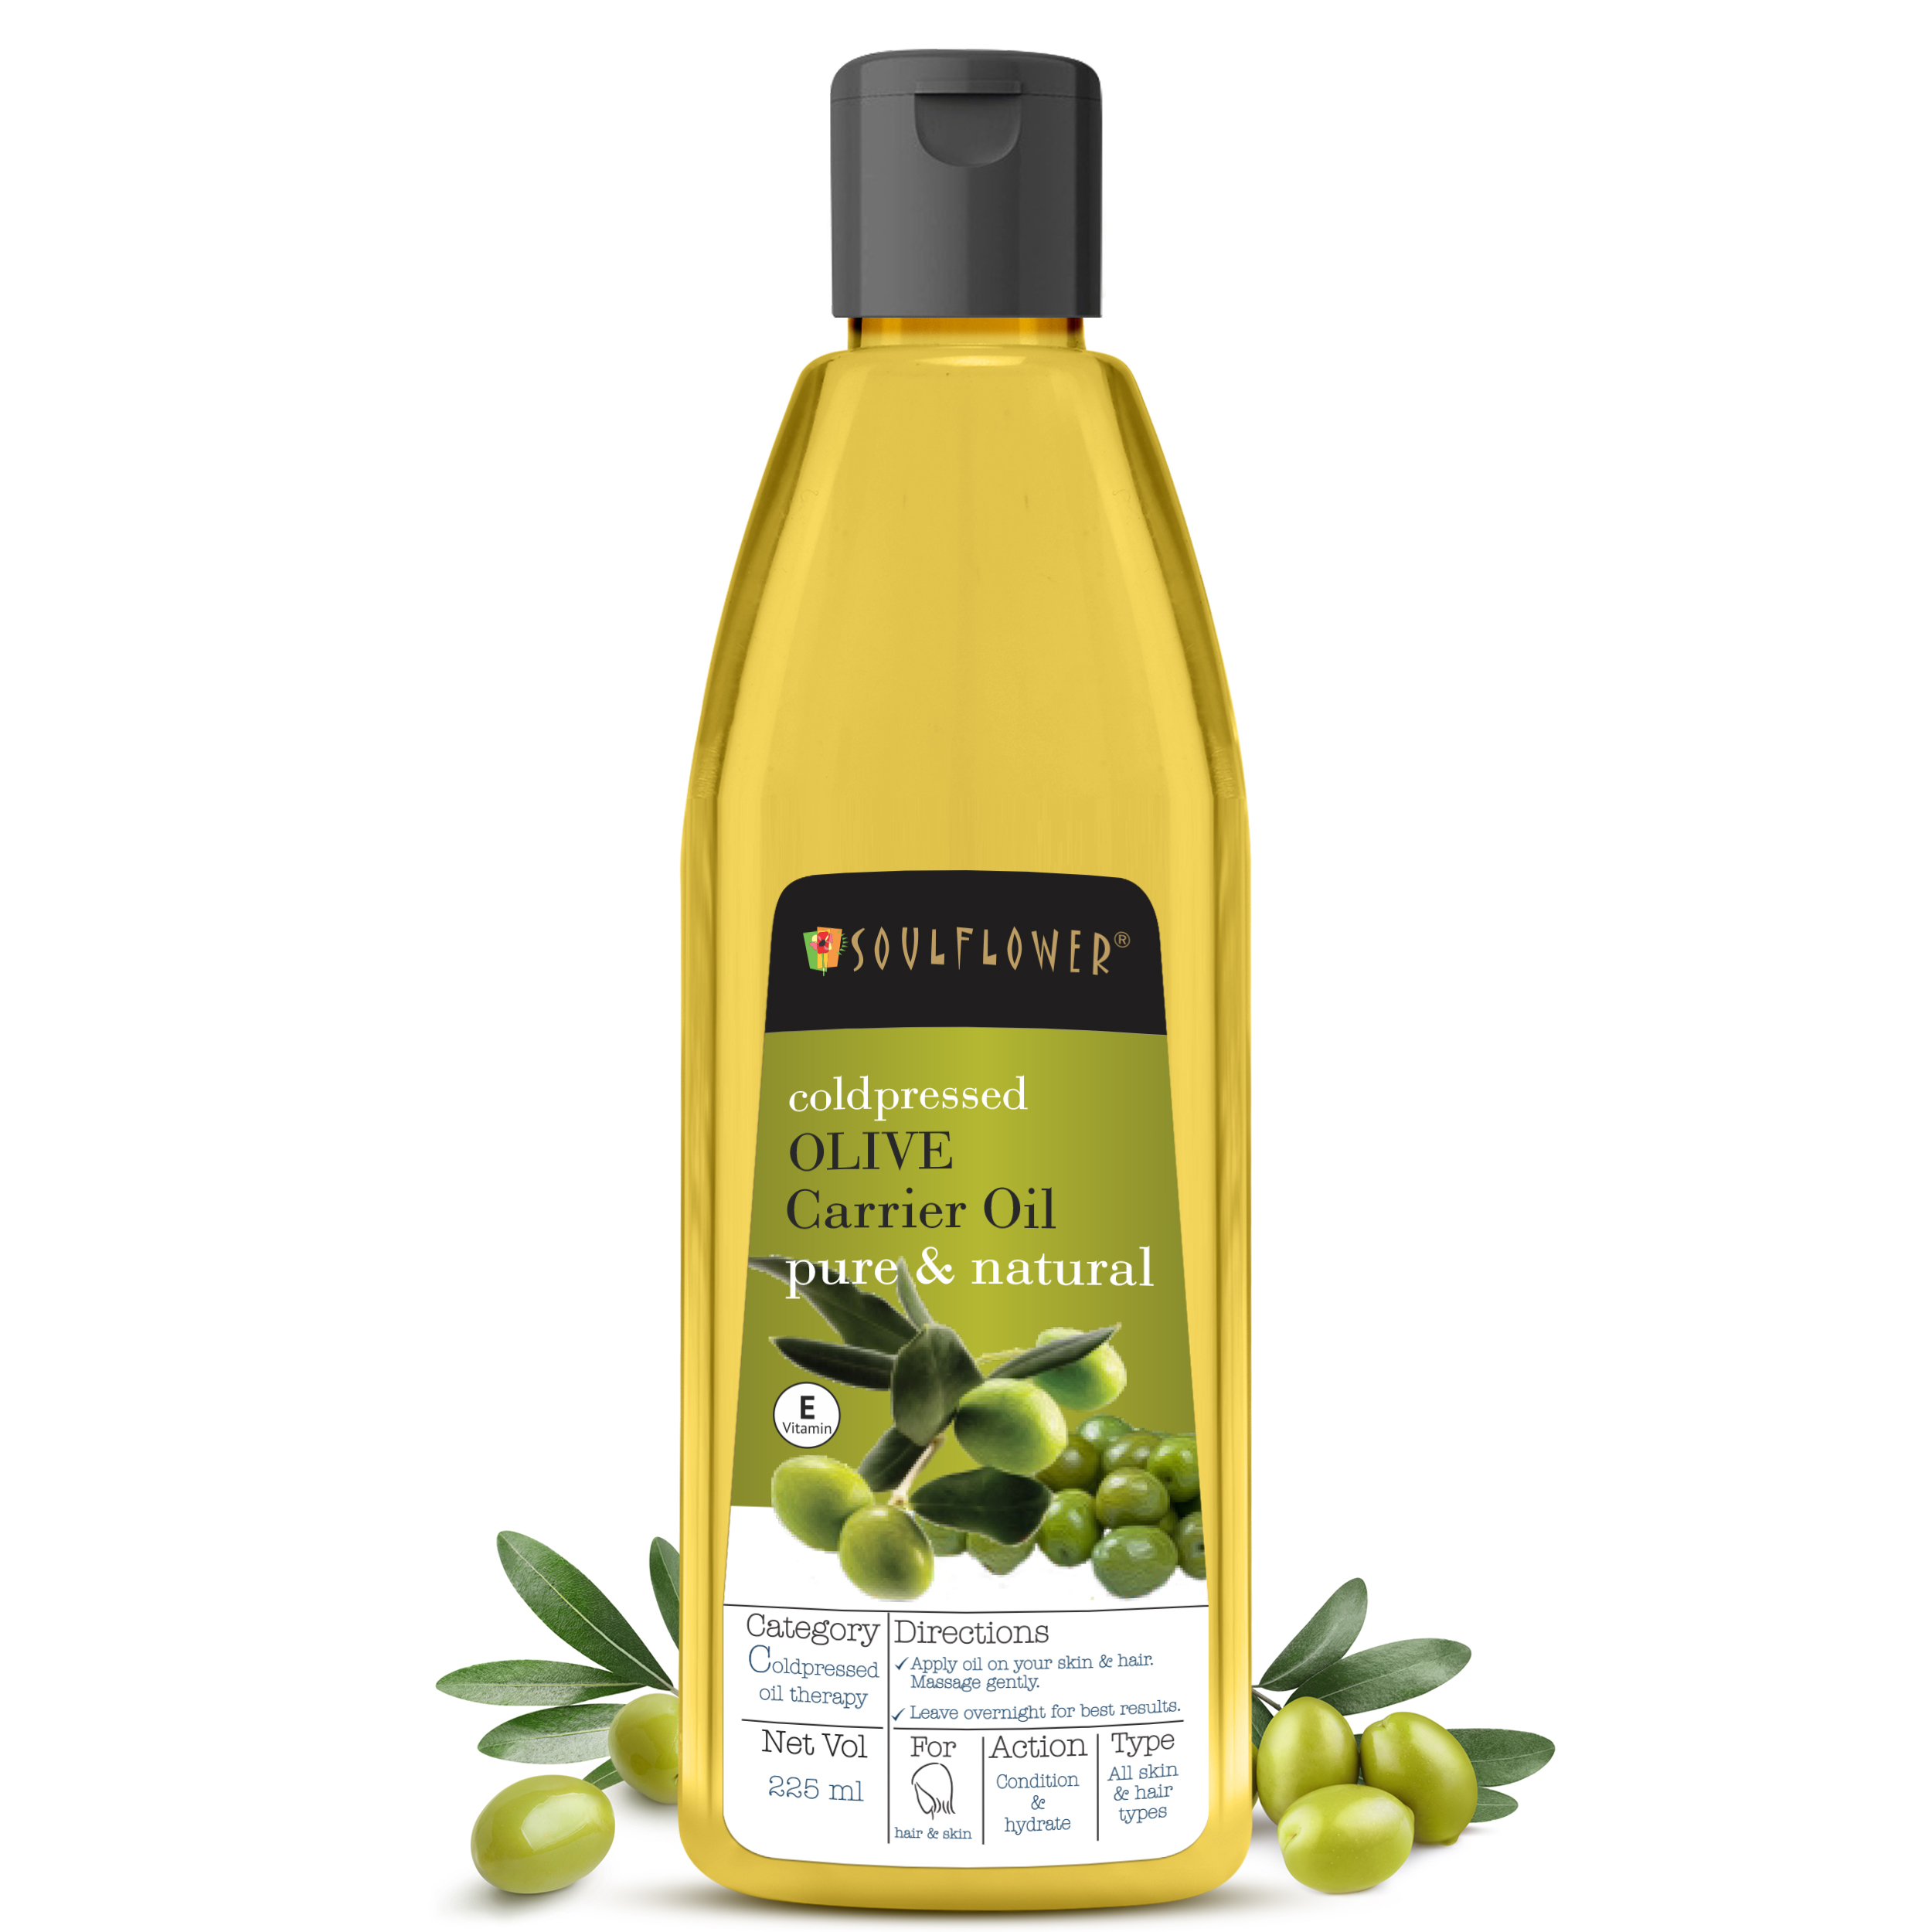 Soulflower | Coldpressed Olive Carrier Oil - 225ML